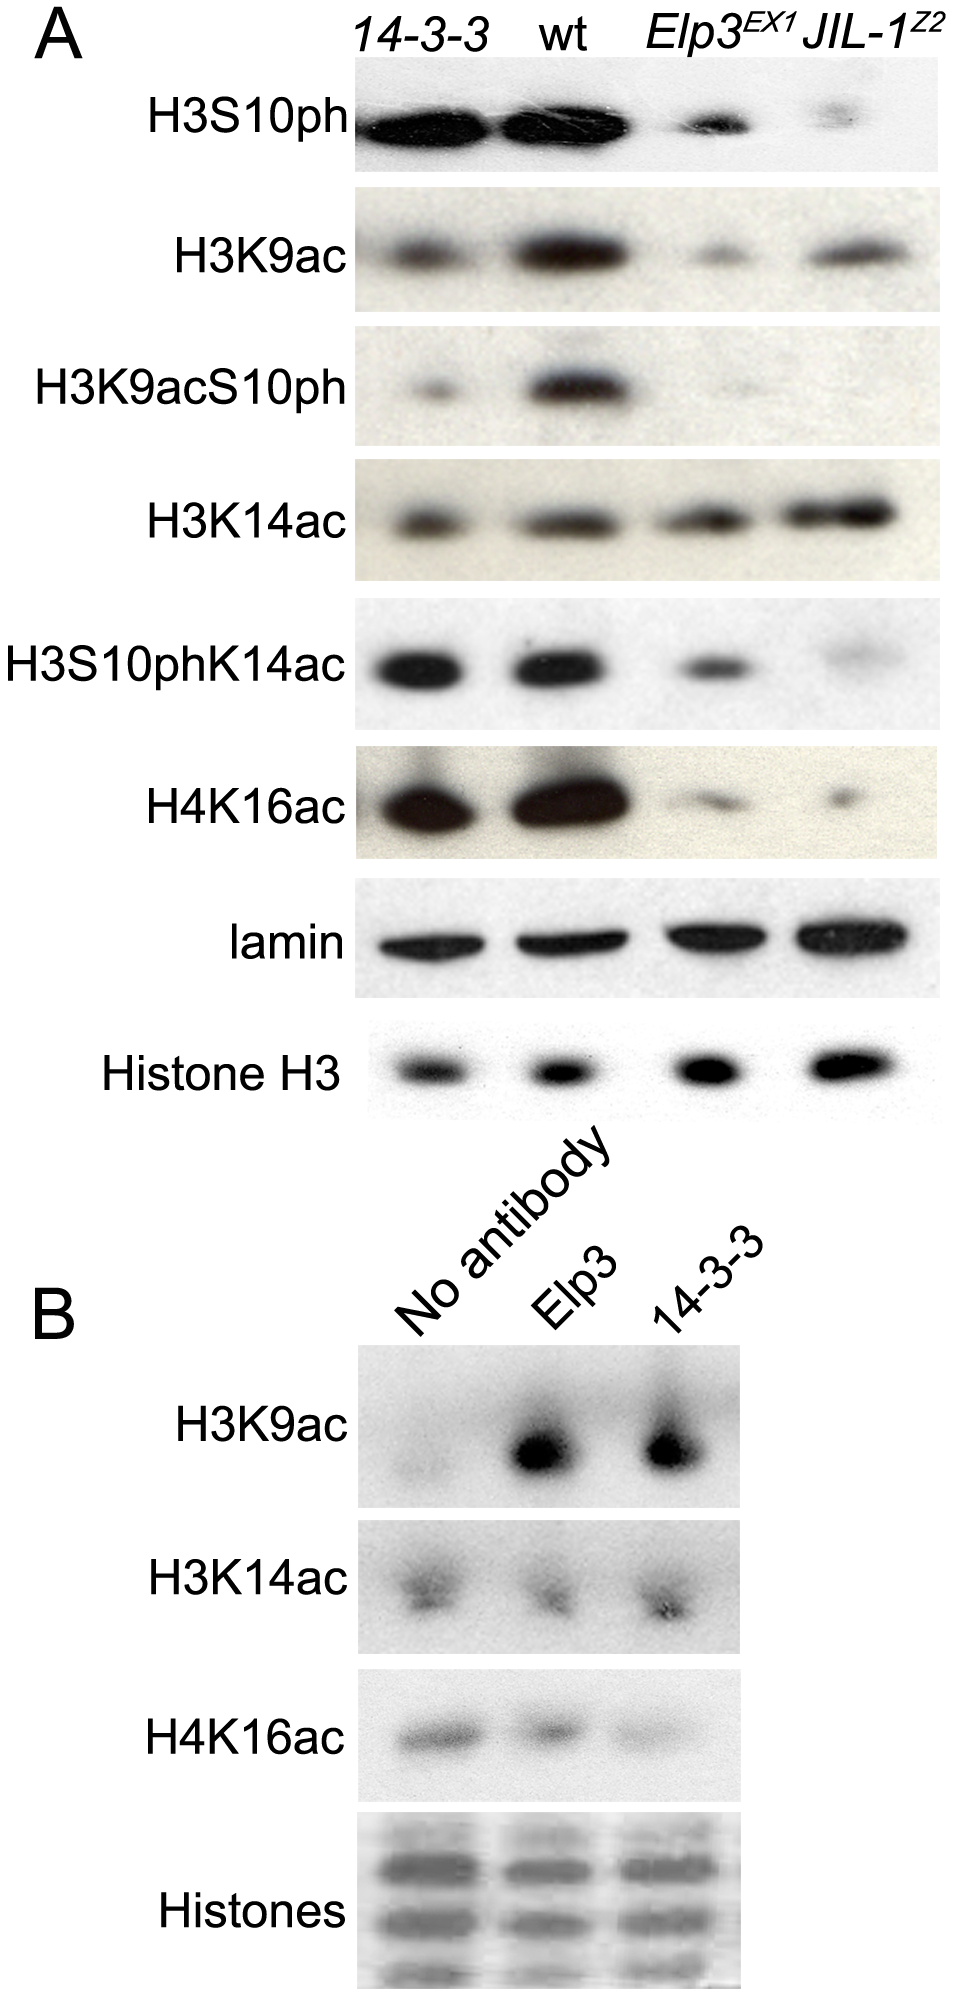 JIL-1, 14-3-3, and Elp3 are required for H3 acetylation.